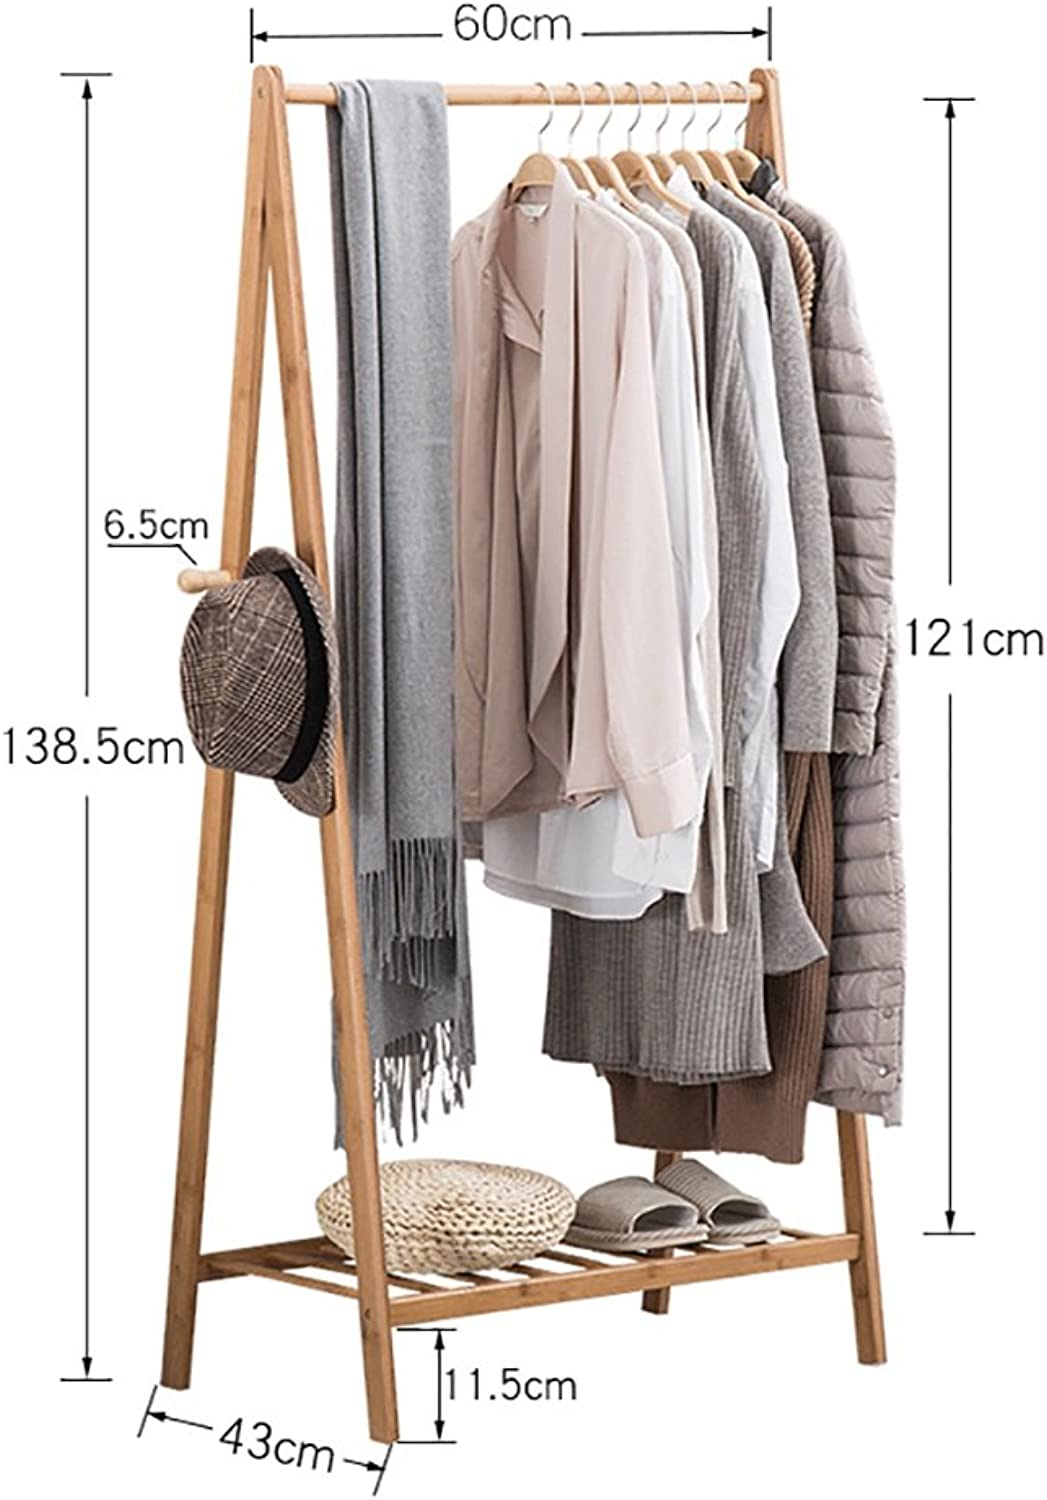 XJRHB Clothes Standing Bamboo Wooden Bedroom Drying with shoes Rack Coat Rack (Size   60CM)